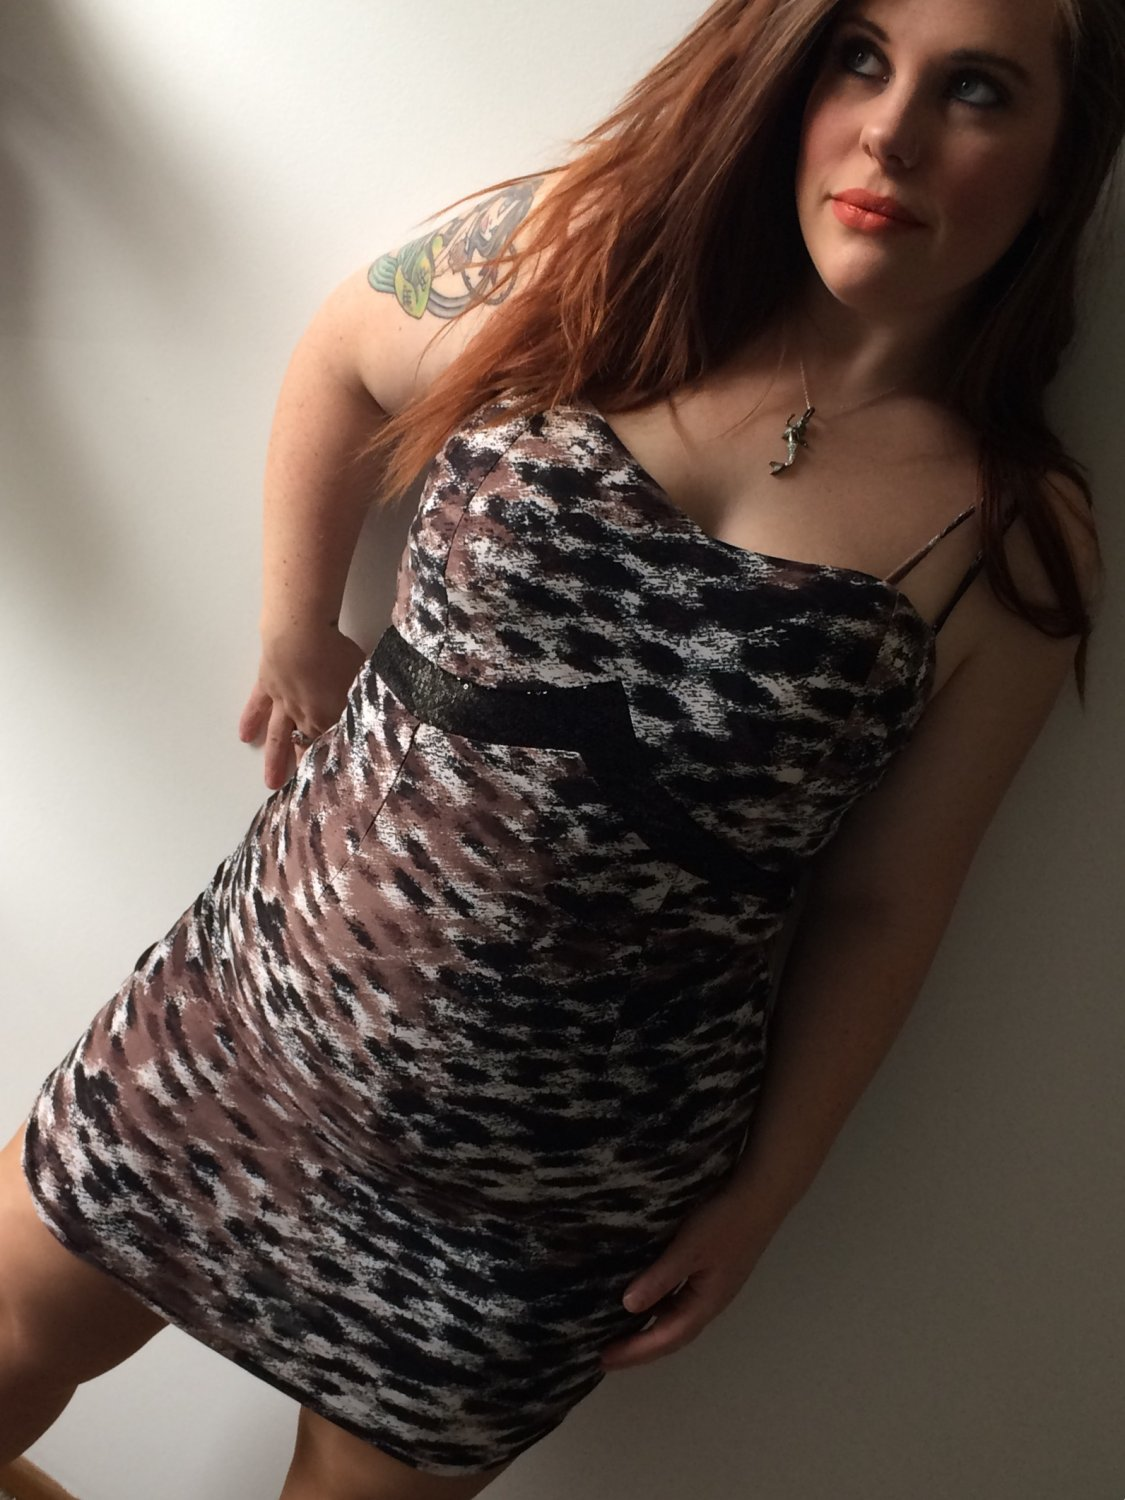 Clothing - Brown Cheetah Print Dress with Sequined Underbust - Large